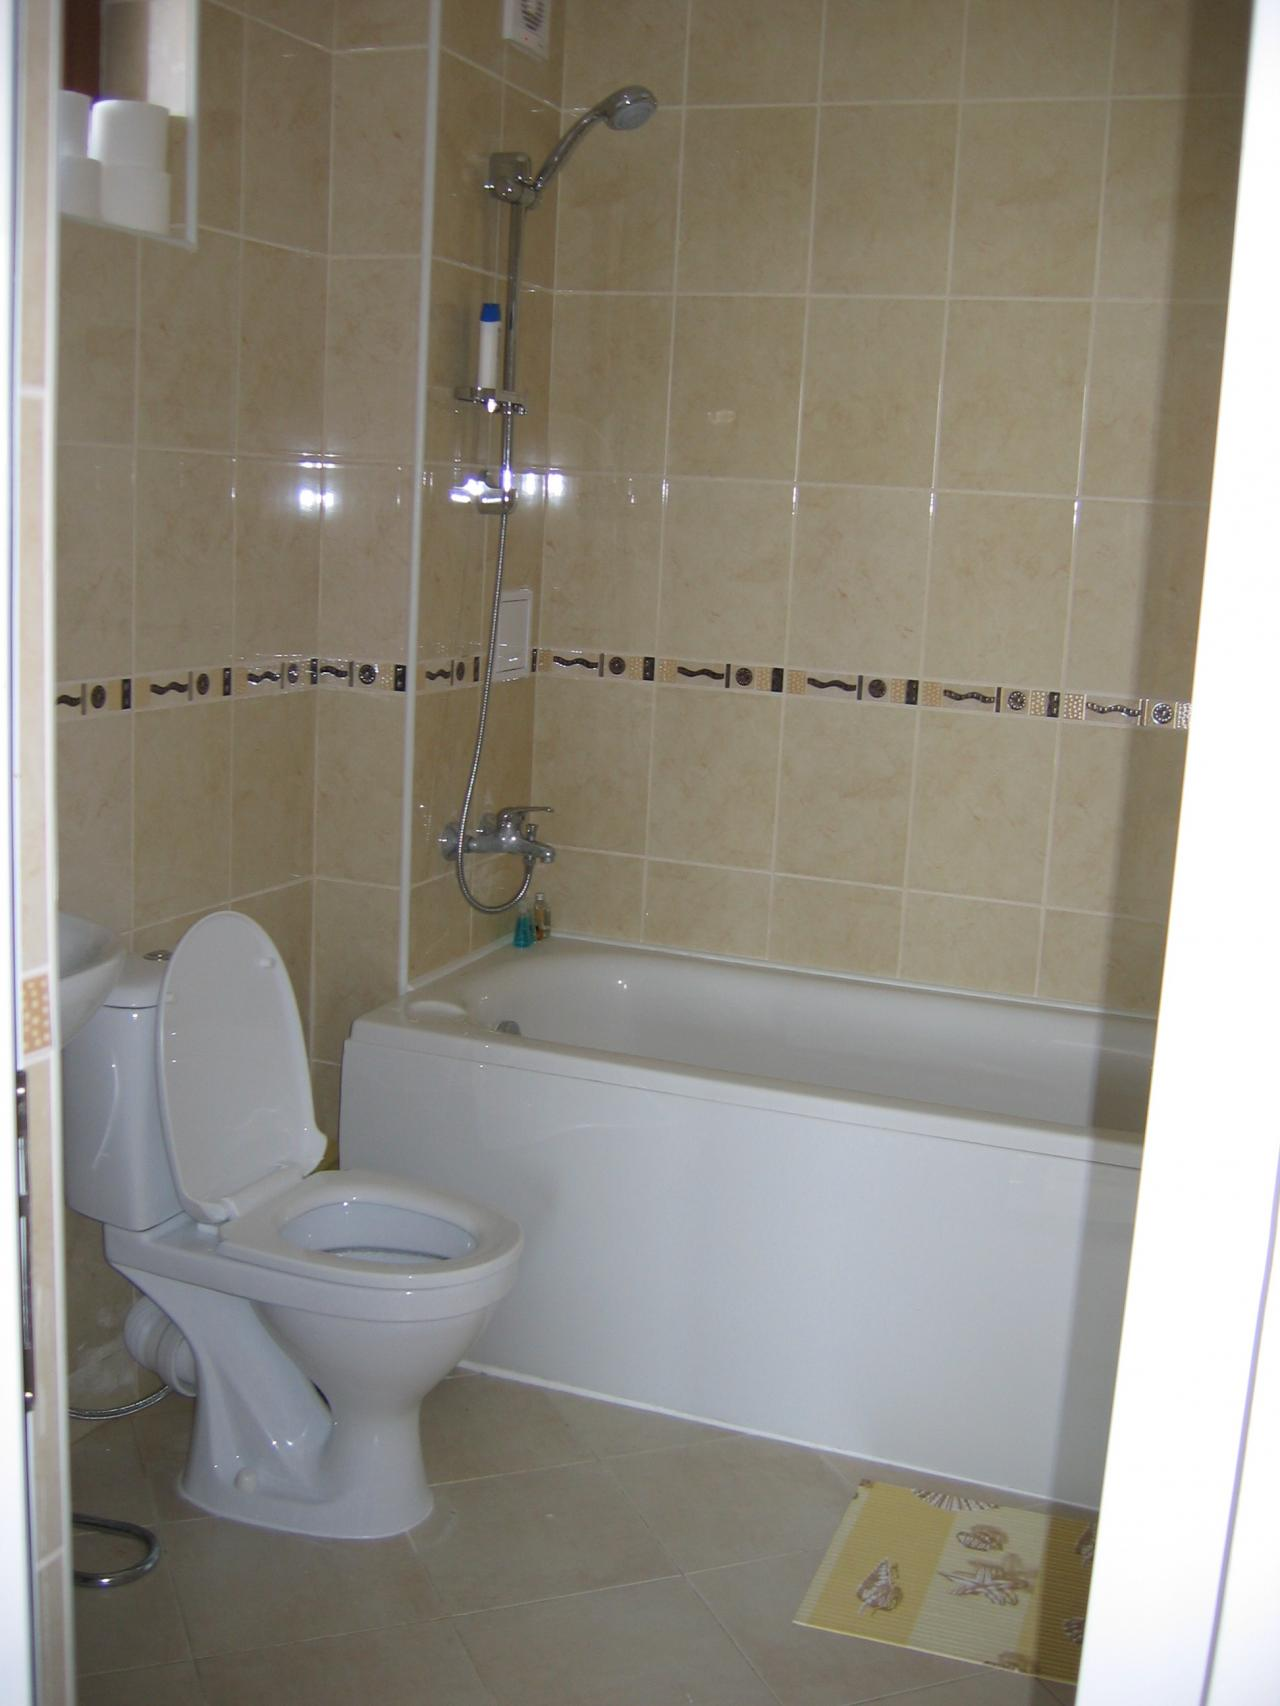 Villa Share Ltd Bathrooms